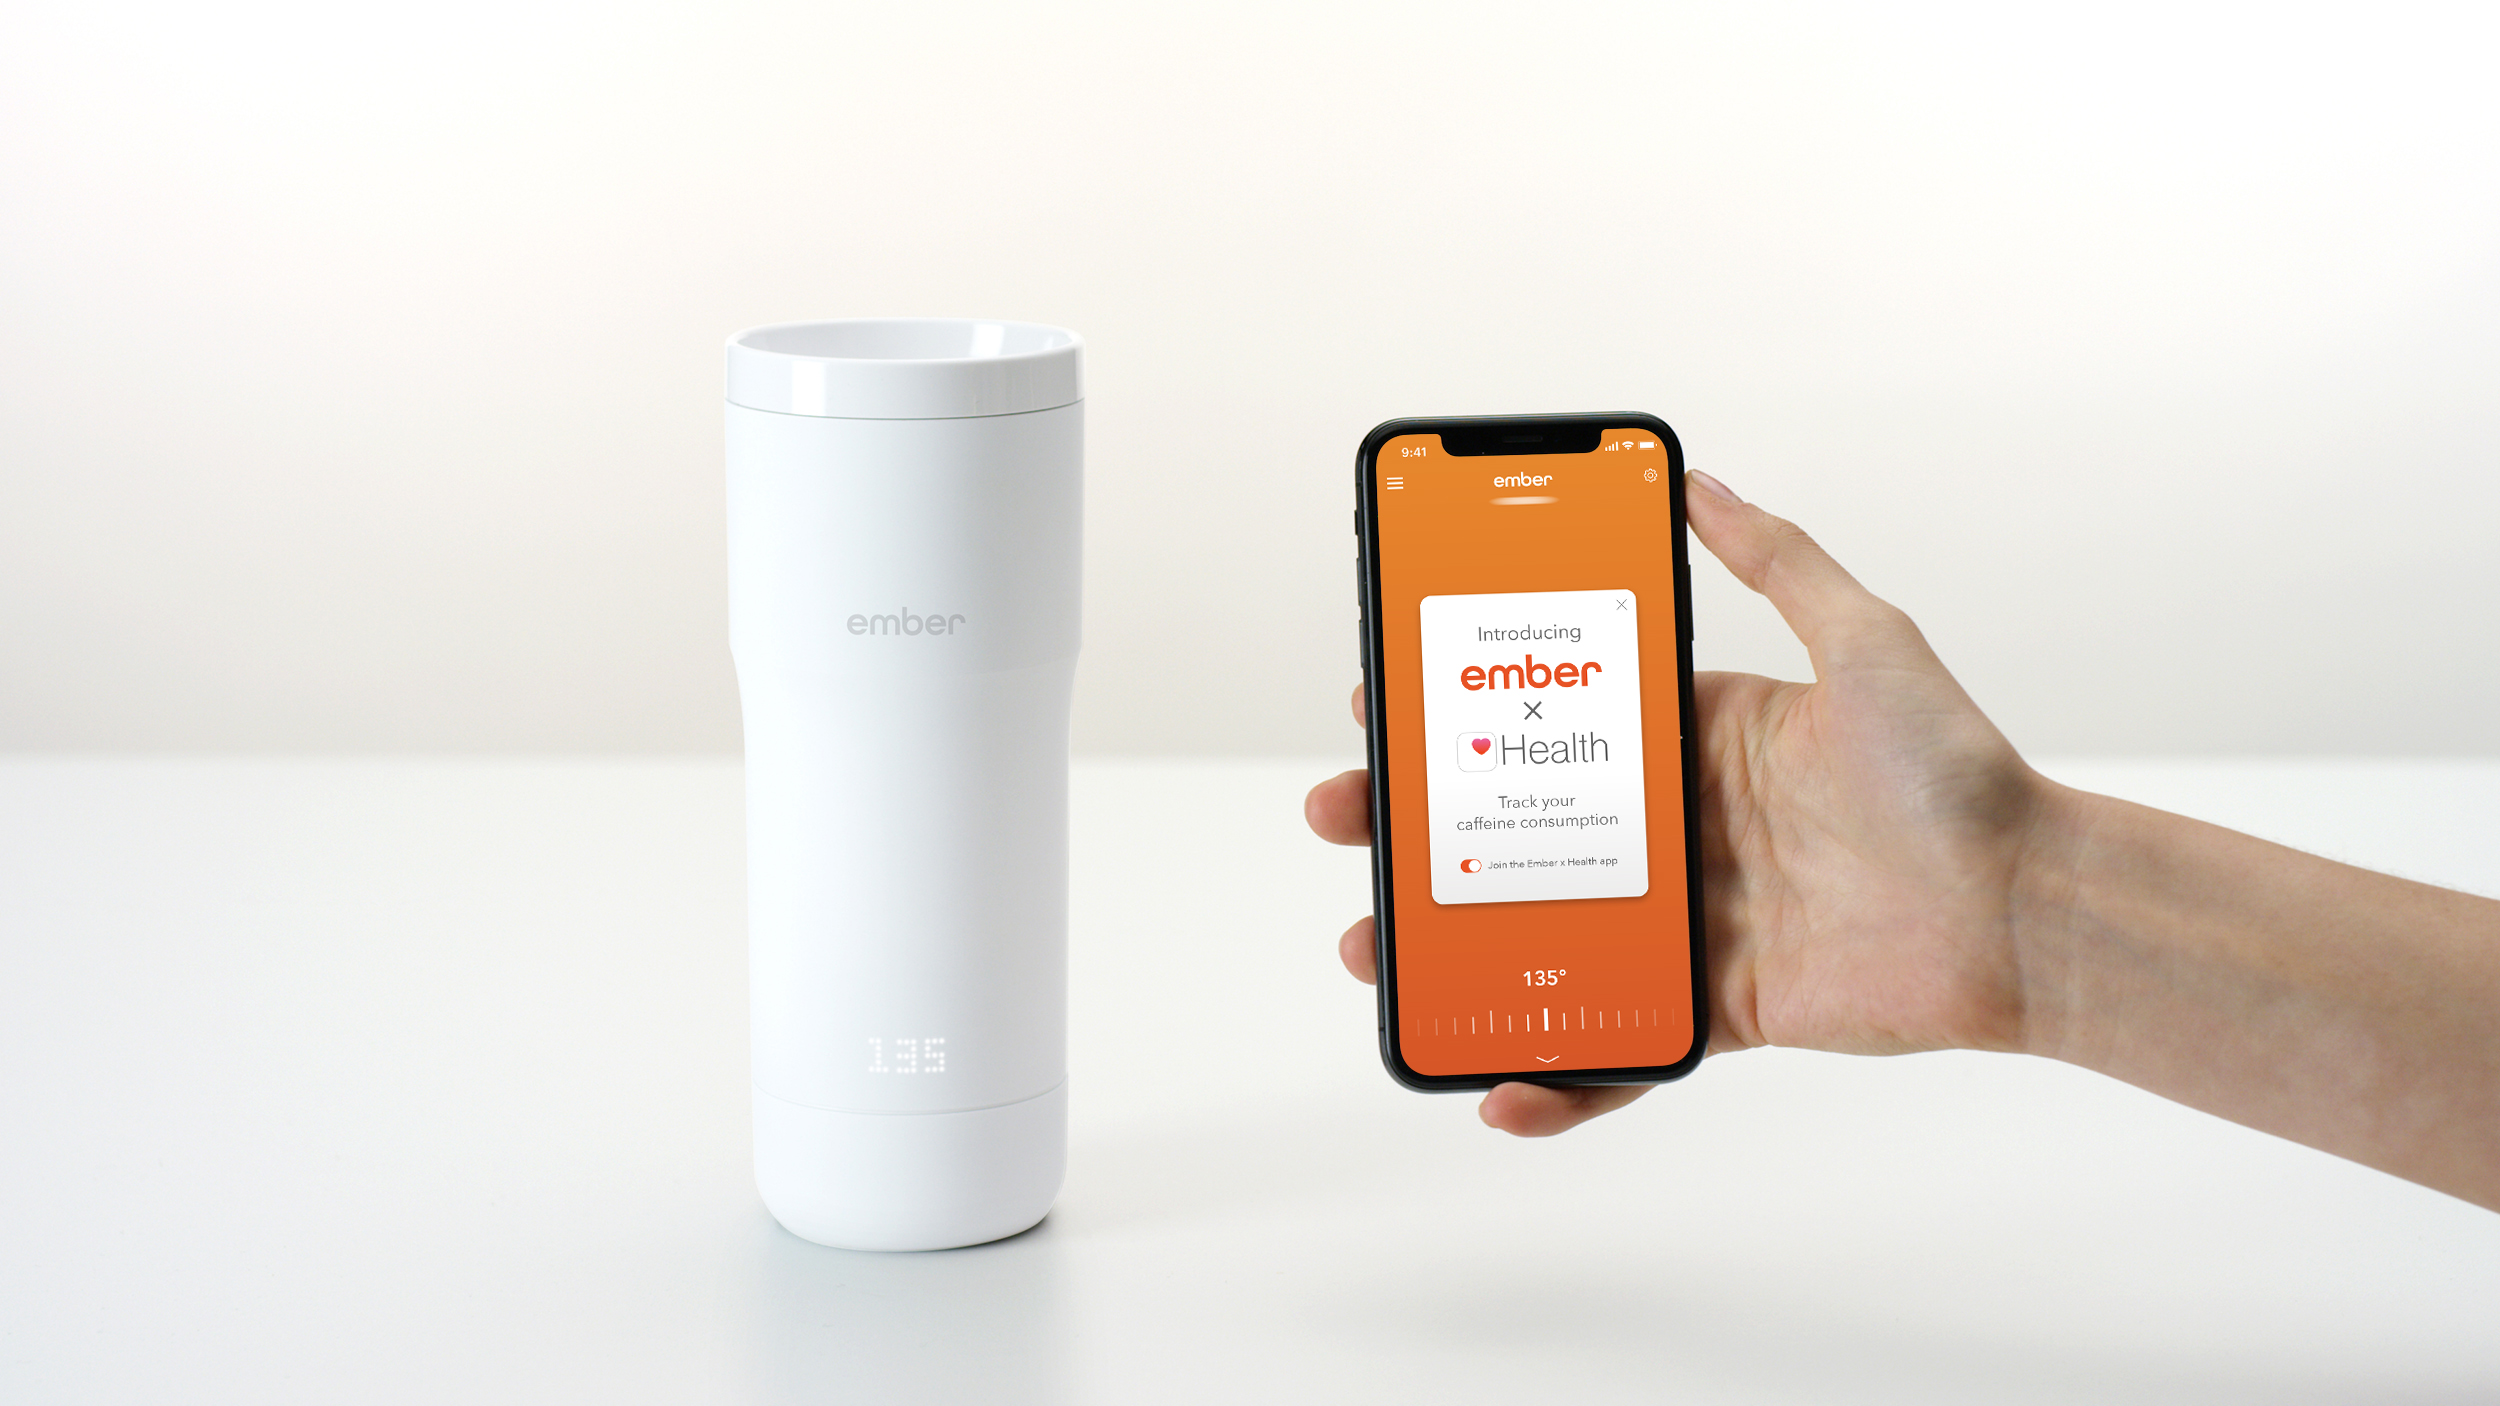 Ember Integrates With Apple Health To Track Caffeine